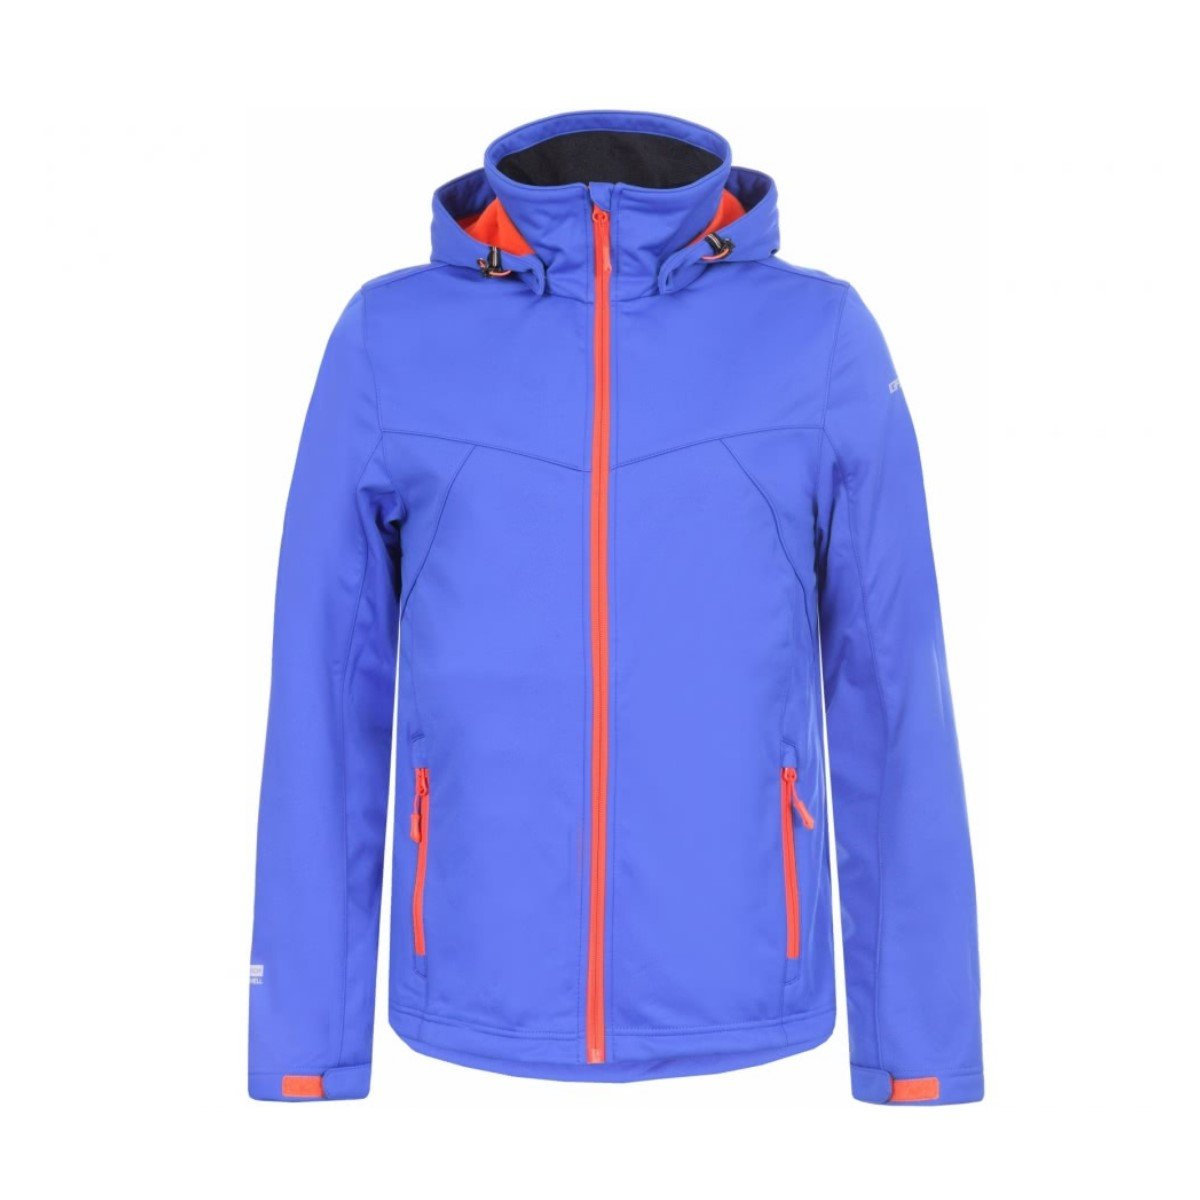 Bleu Orange 3XL Icepeak